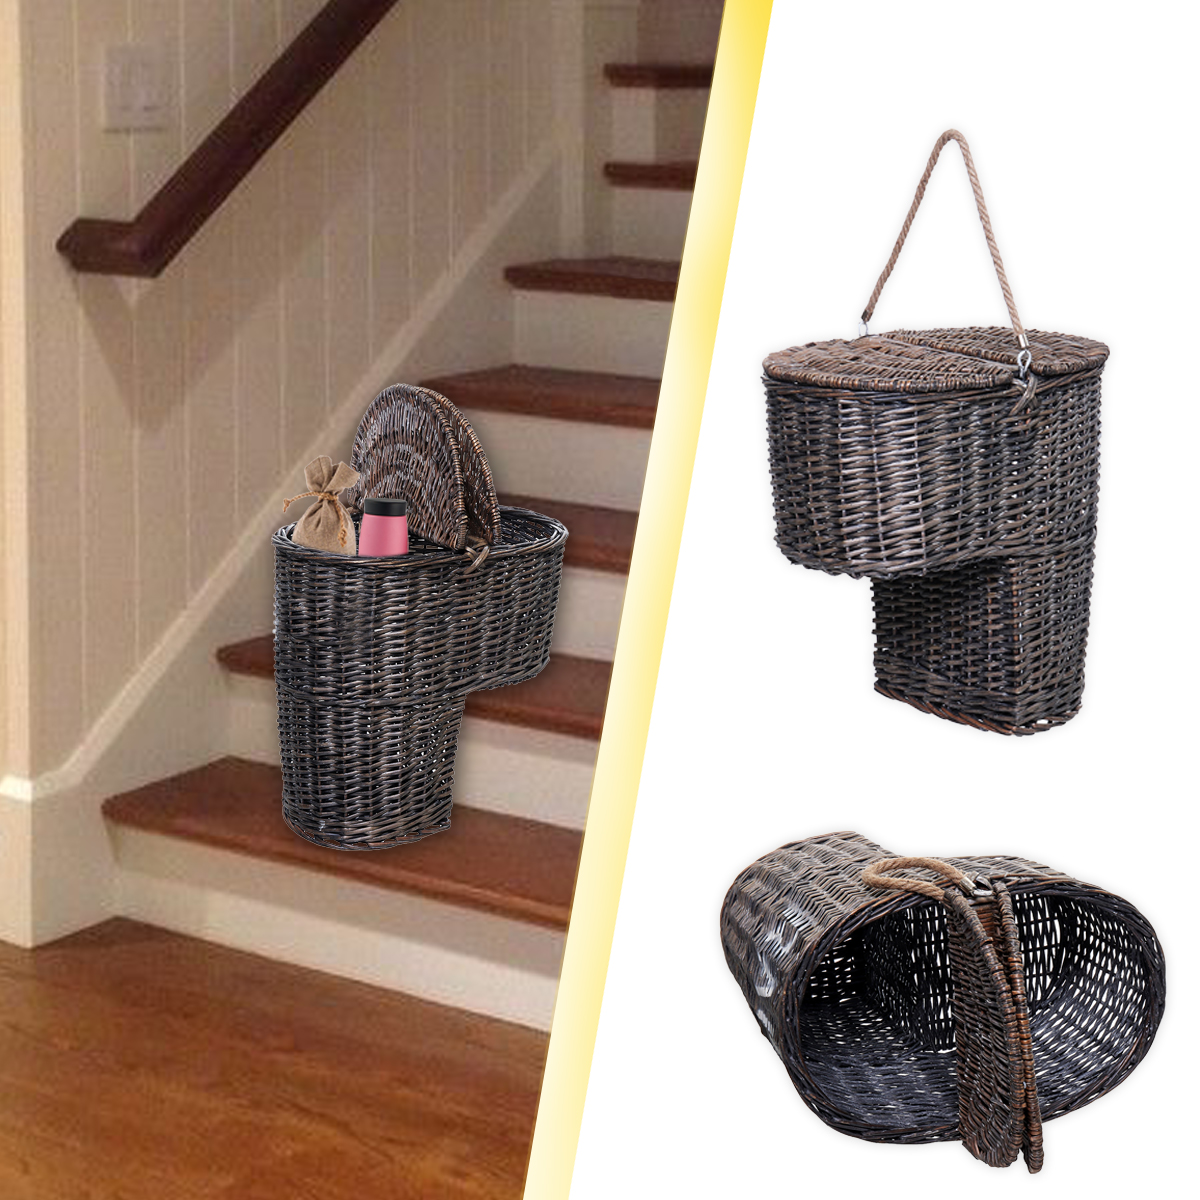 Genial Wicker Handwoven Stair Step Storage Box Basket Container Carry With Handle  Cover